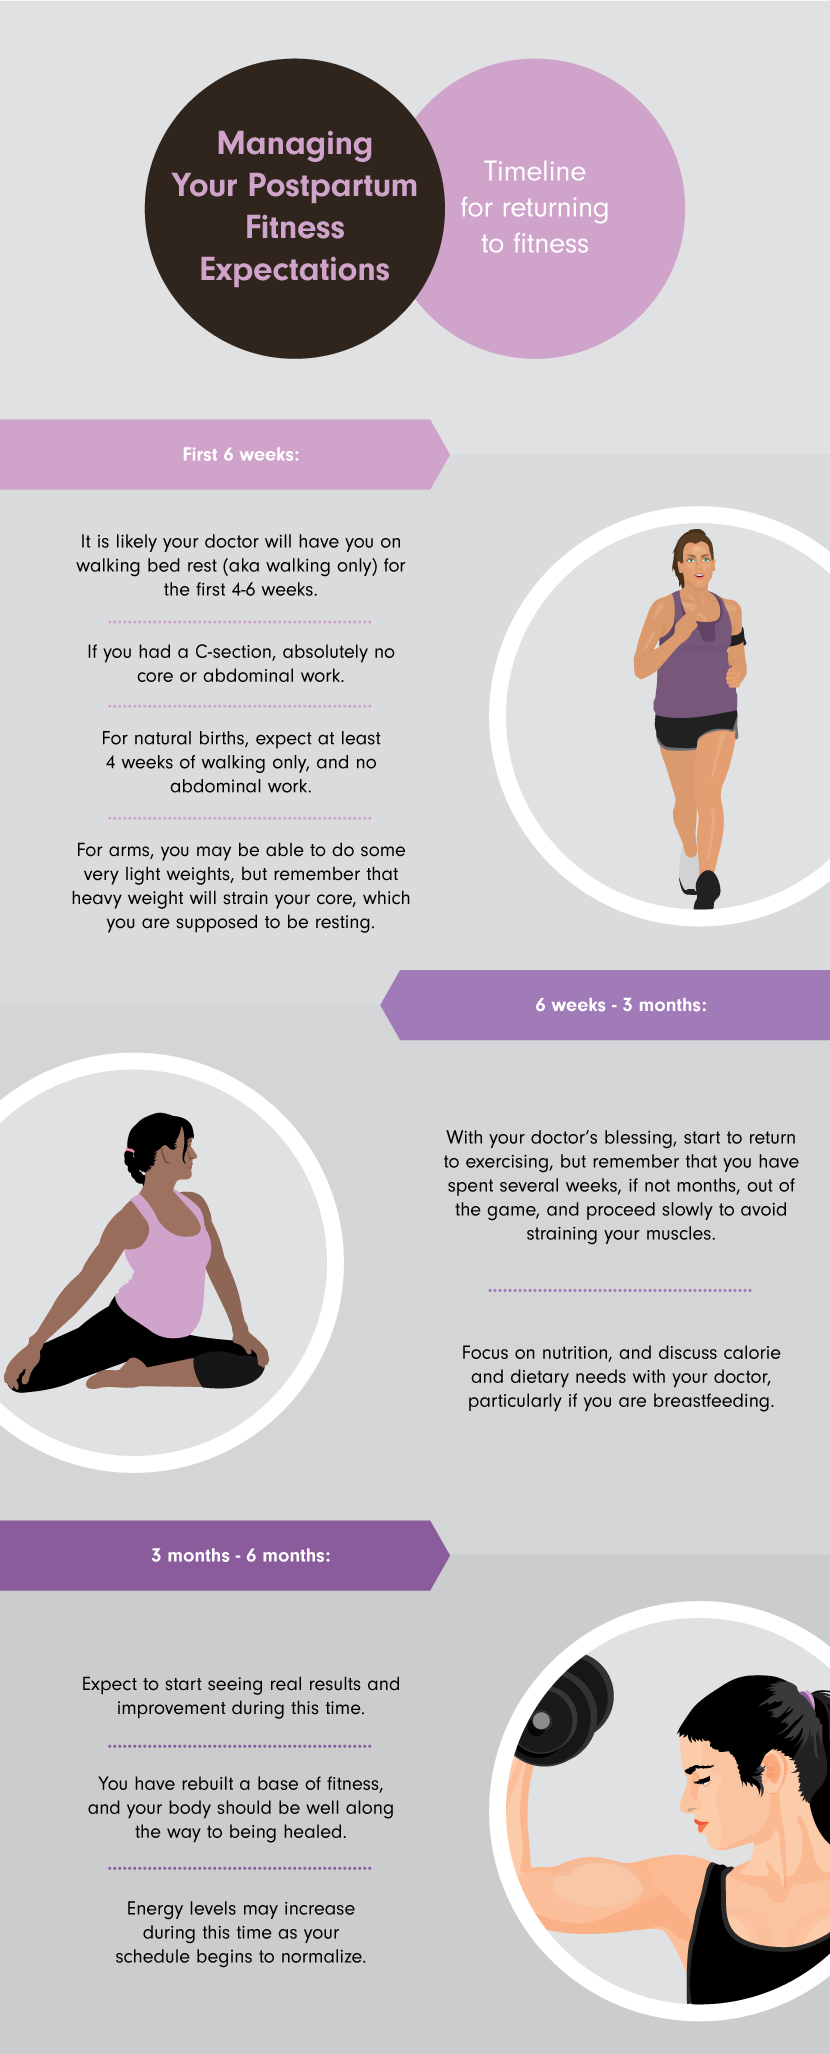 Managing Your Postpartum Fitness Expectations - A Guide to Postpartum Fitness